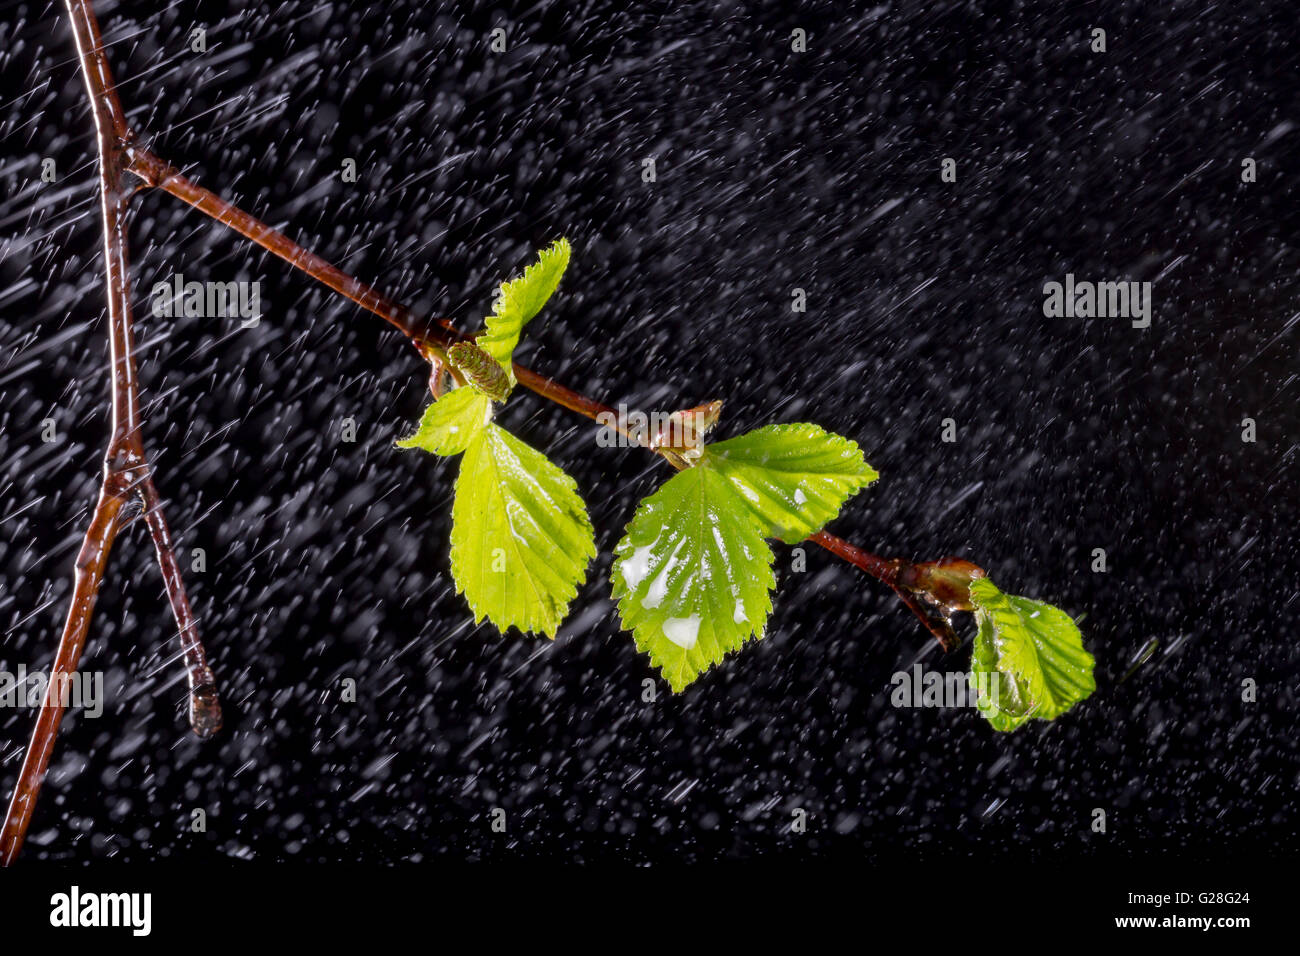 Birch Leaves with Rain on black background. - Stock Image